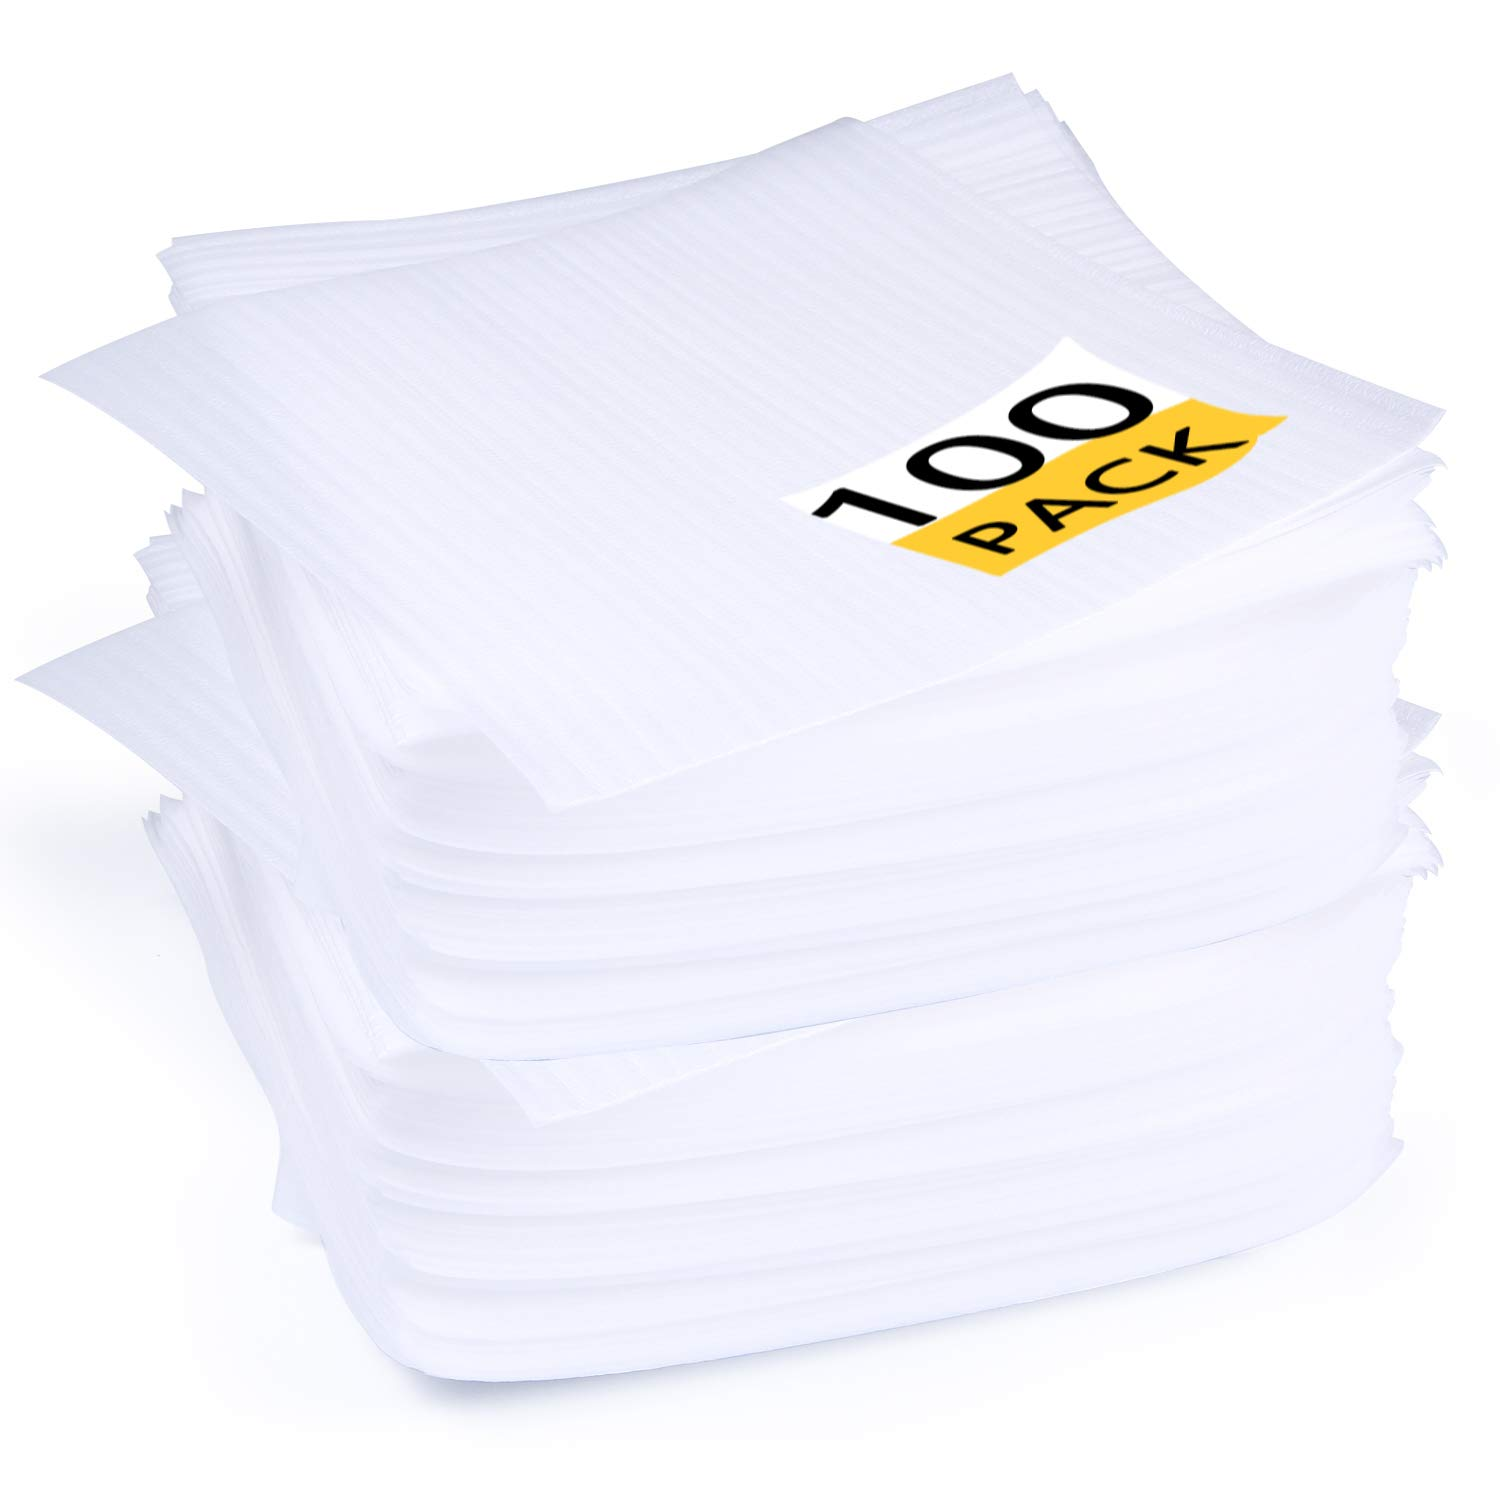 Foam Wraps,12'' x 12'' (100 Pack) Foam Wrap Sheets Cushioning Protect Glasses, China, Dishes for Moving Shipping Packing & Storing